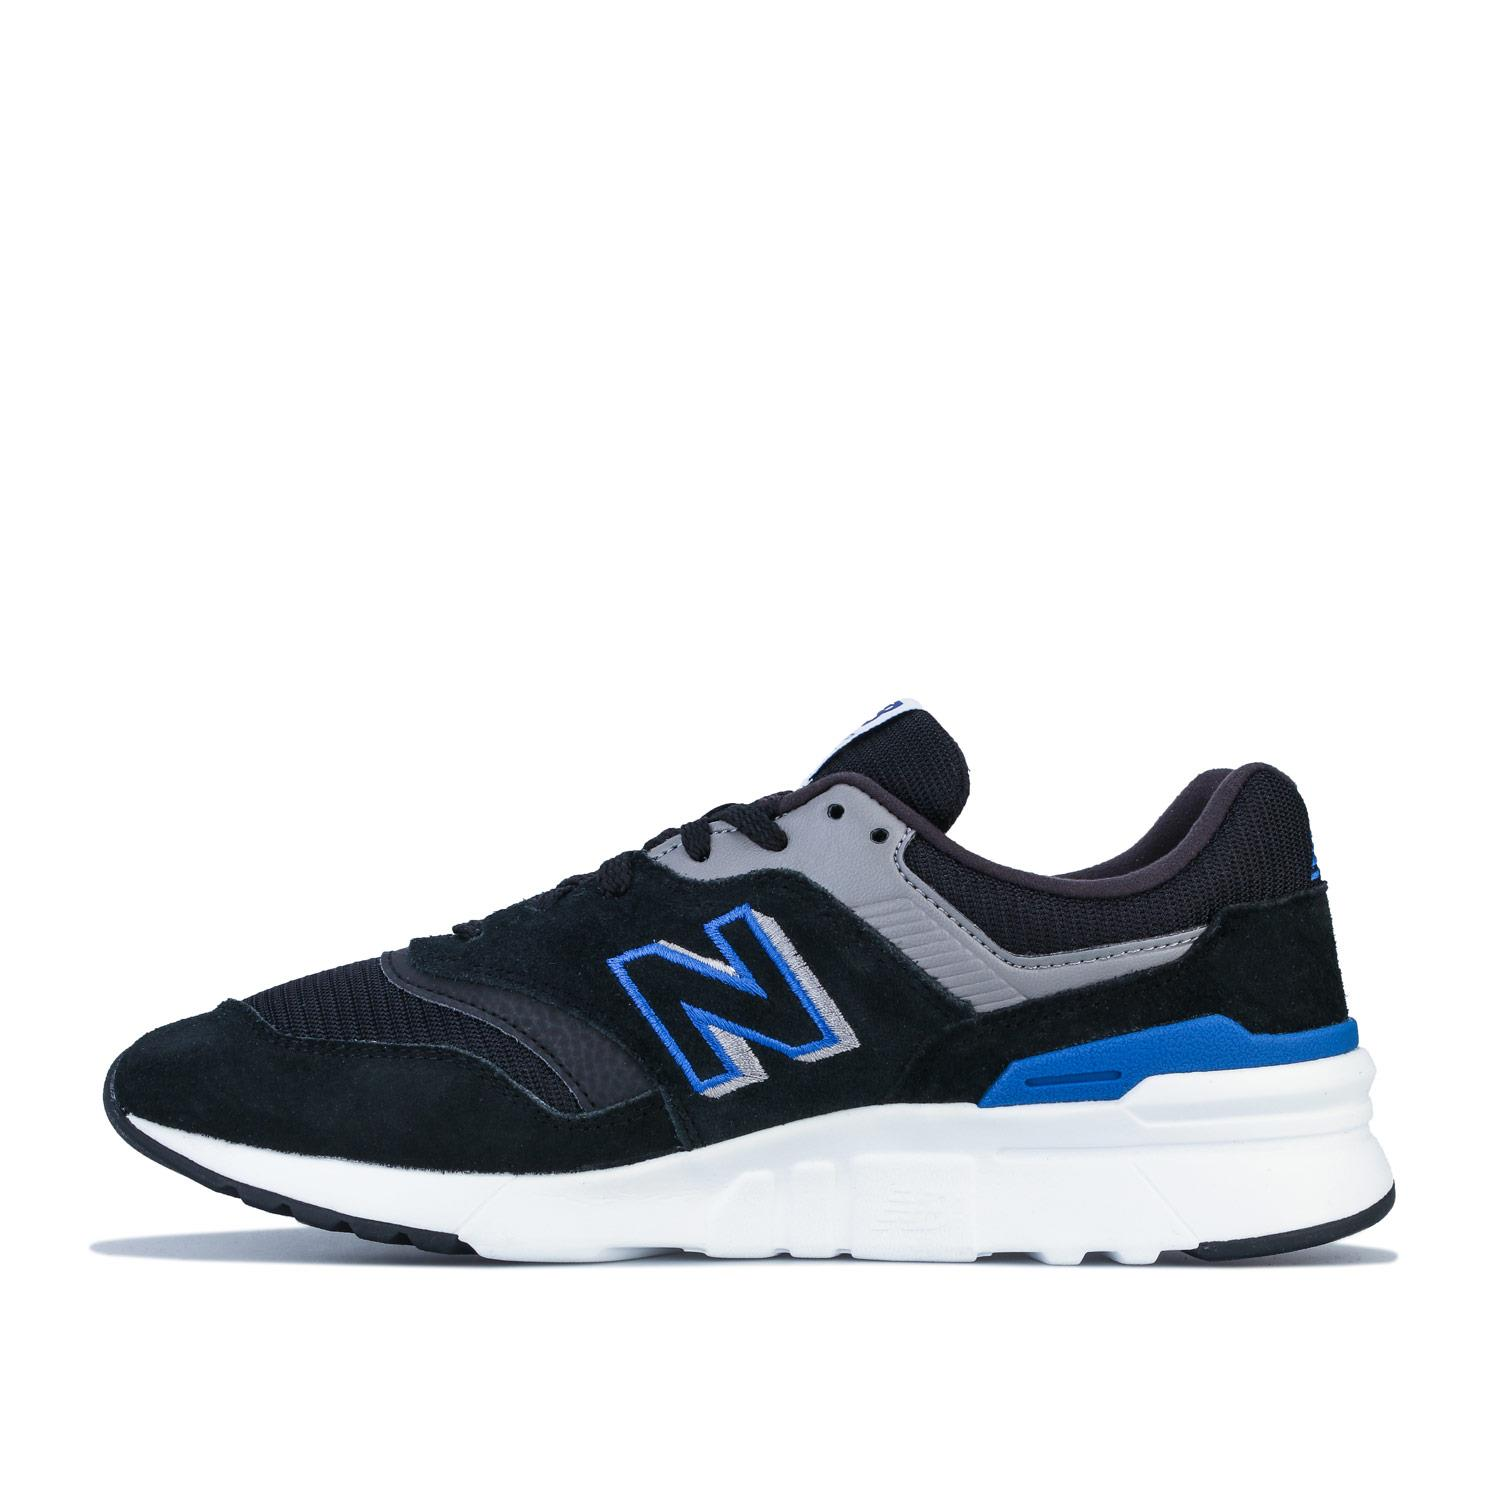 Mens-New-Balance-997H-Lace-up-Cushioned-Trainers-in-Navy-Blue-and-Black thumbnail 4